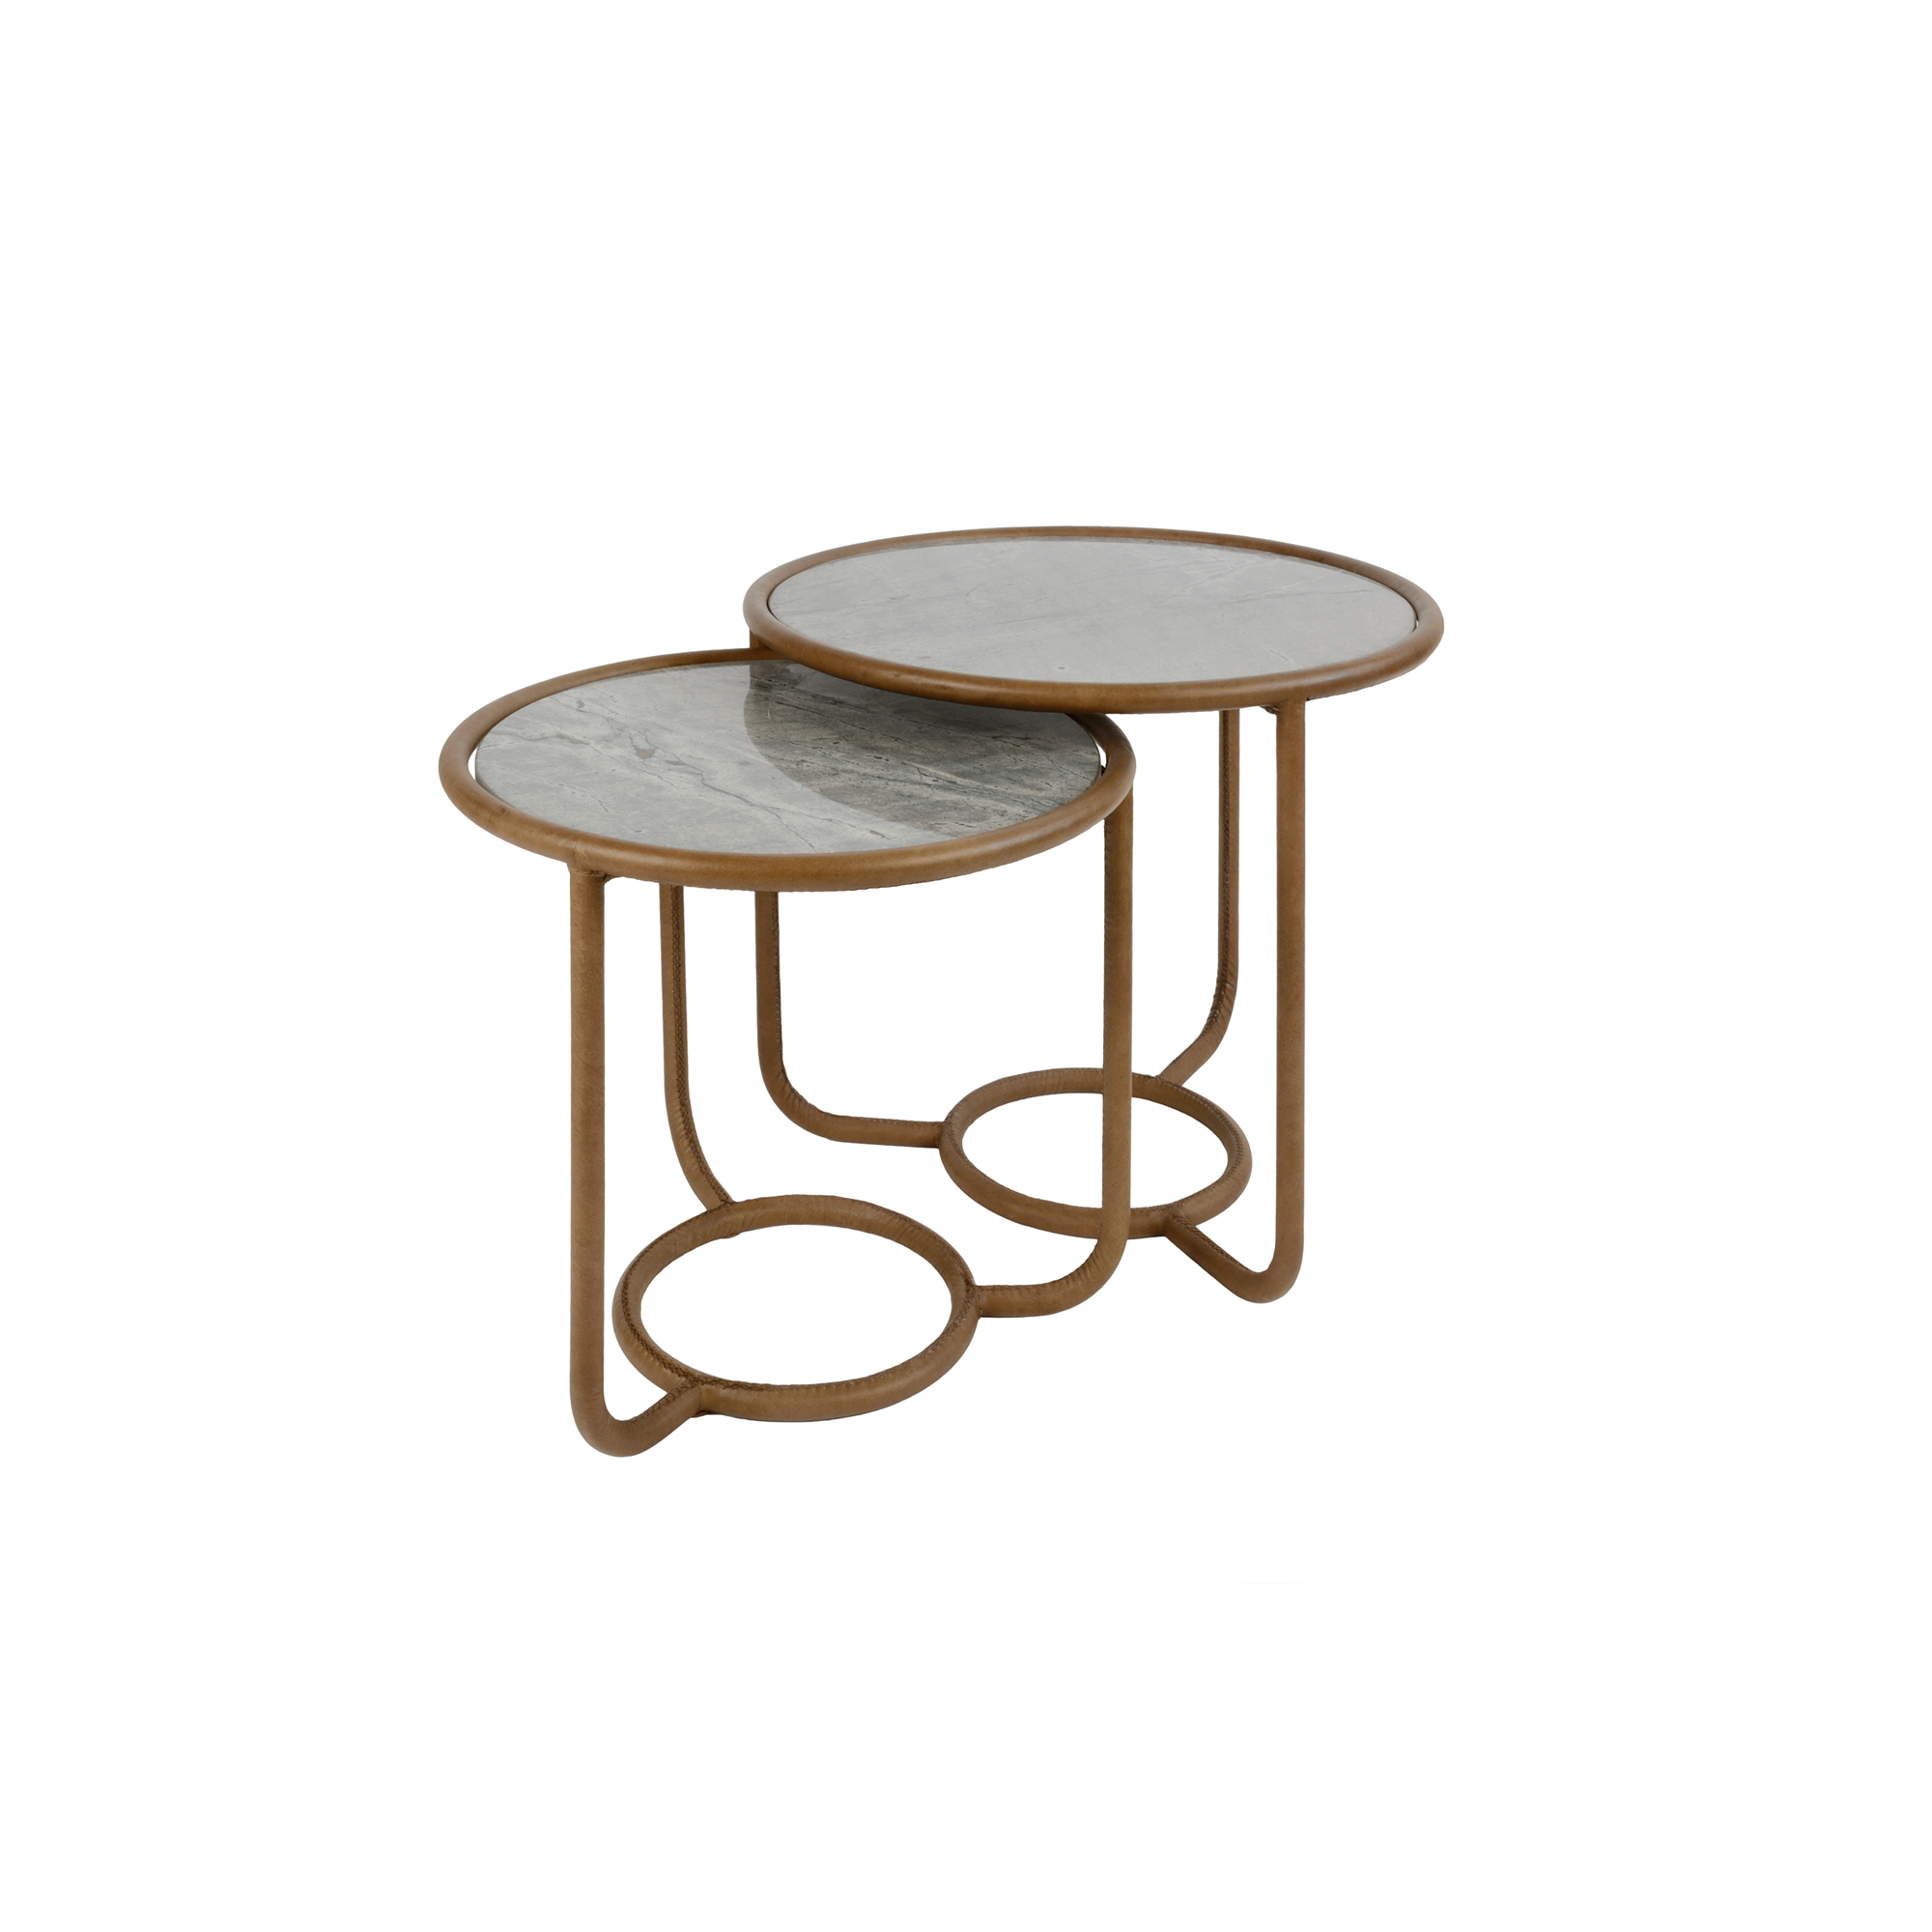 LEATHER SMITH NESTING TABLES